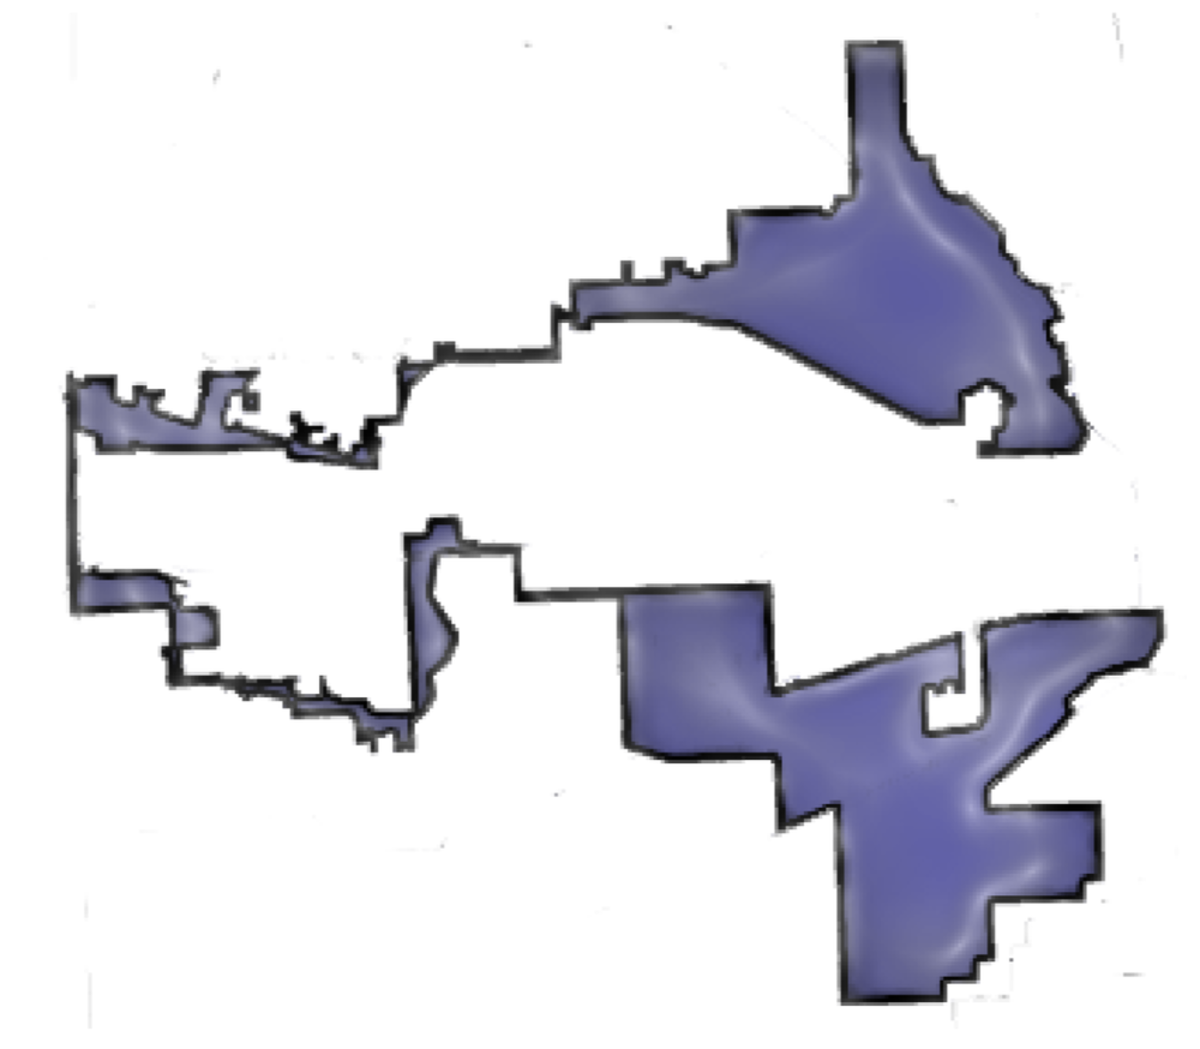 Electoral Gerrymandering graphic. Electoral gerrymandering often leads to congressional districts with strange and elaborate shapes. In the case Illinois District 4, shown here as drawn in 2004, the shape resembles a pair of earmuffs.